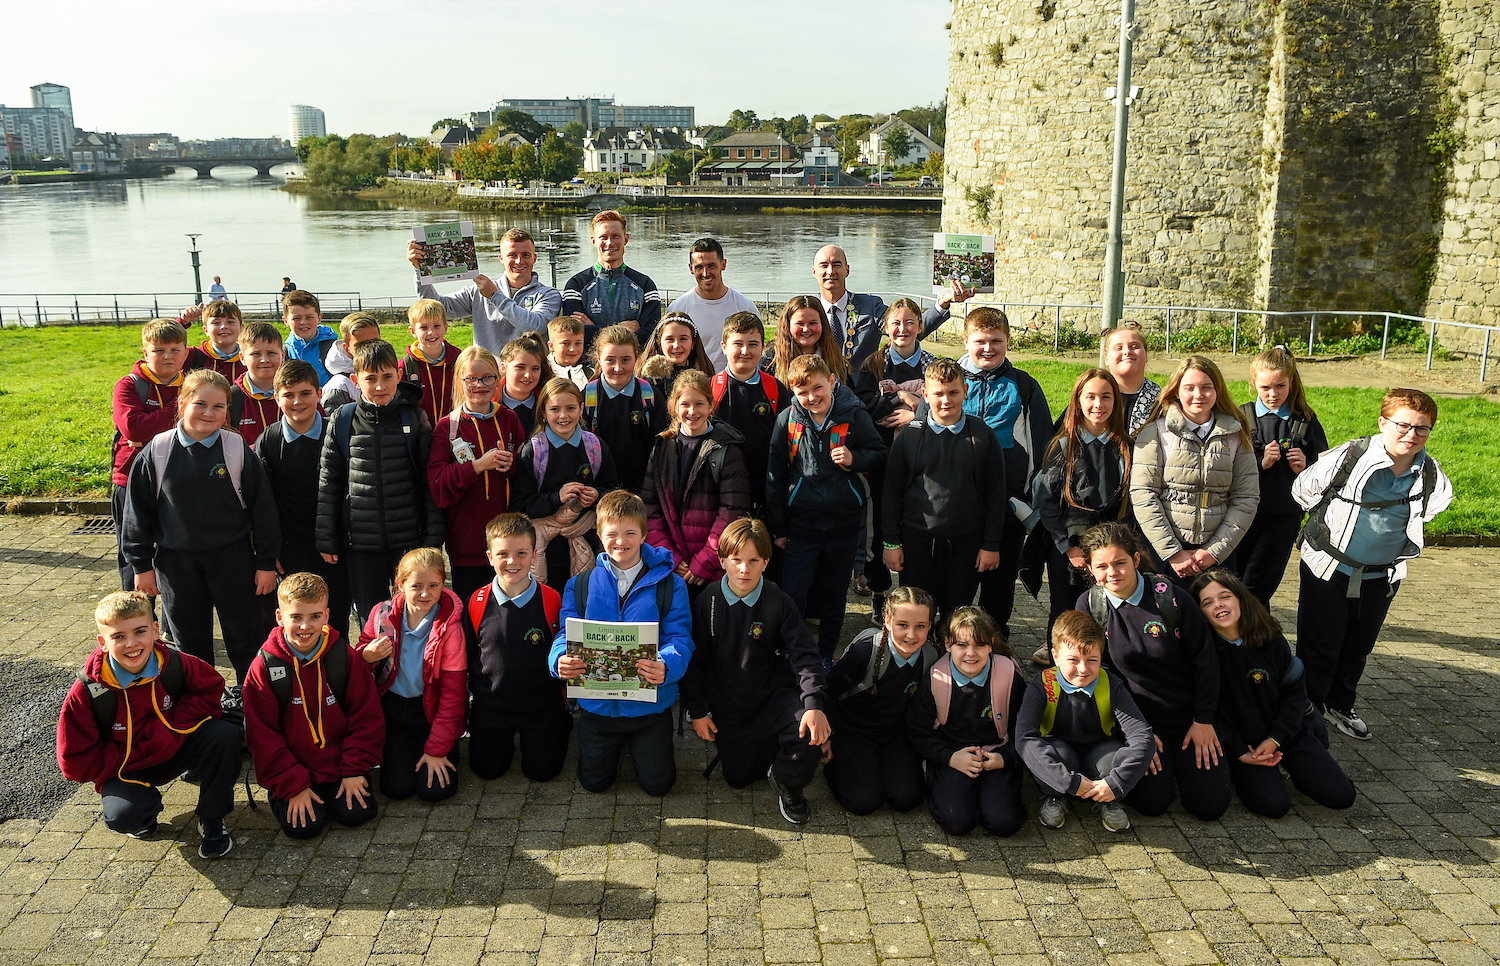 Limerick Back 2 Back book - 5th class students from Our Lady Queen of Peace Primary School along with Limerick hurlers, back row, from left, Peter Casey, William O'Donoghue and Darragh O'Donovan with Cllr Daniel Butler, Mayor of the City and County of Limerick at the launch of 'Back 2 Back' at Limerick City and County Council offices at Merchants Quay in Limerick. Picture: Diarmuid Greene/Sportsfile